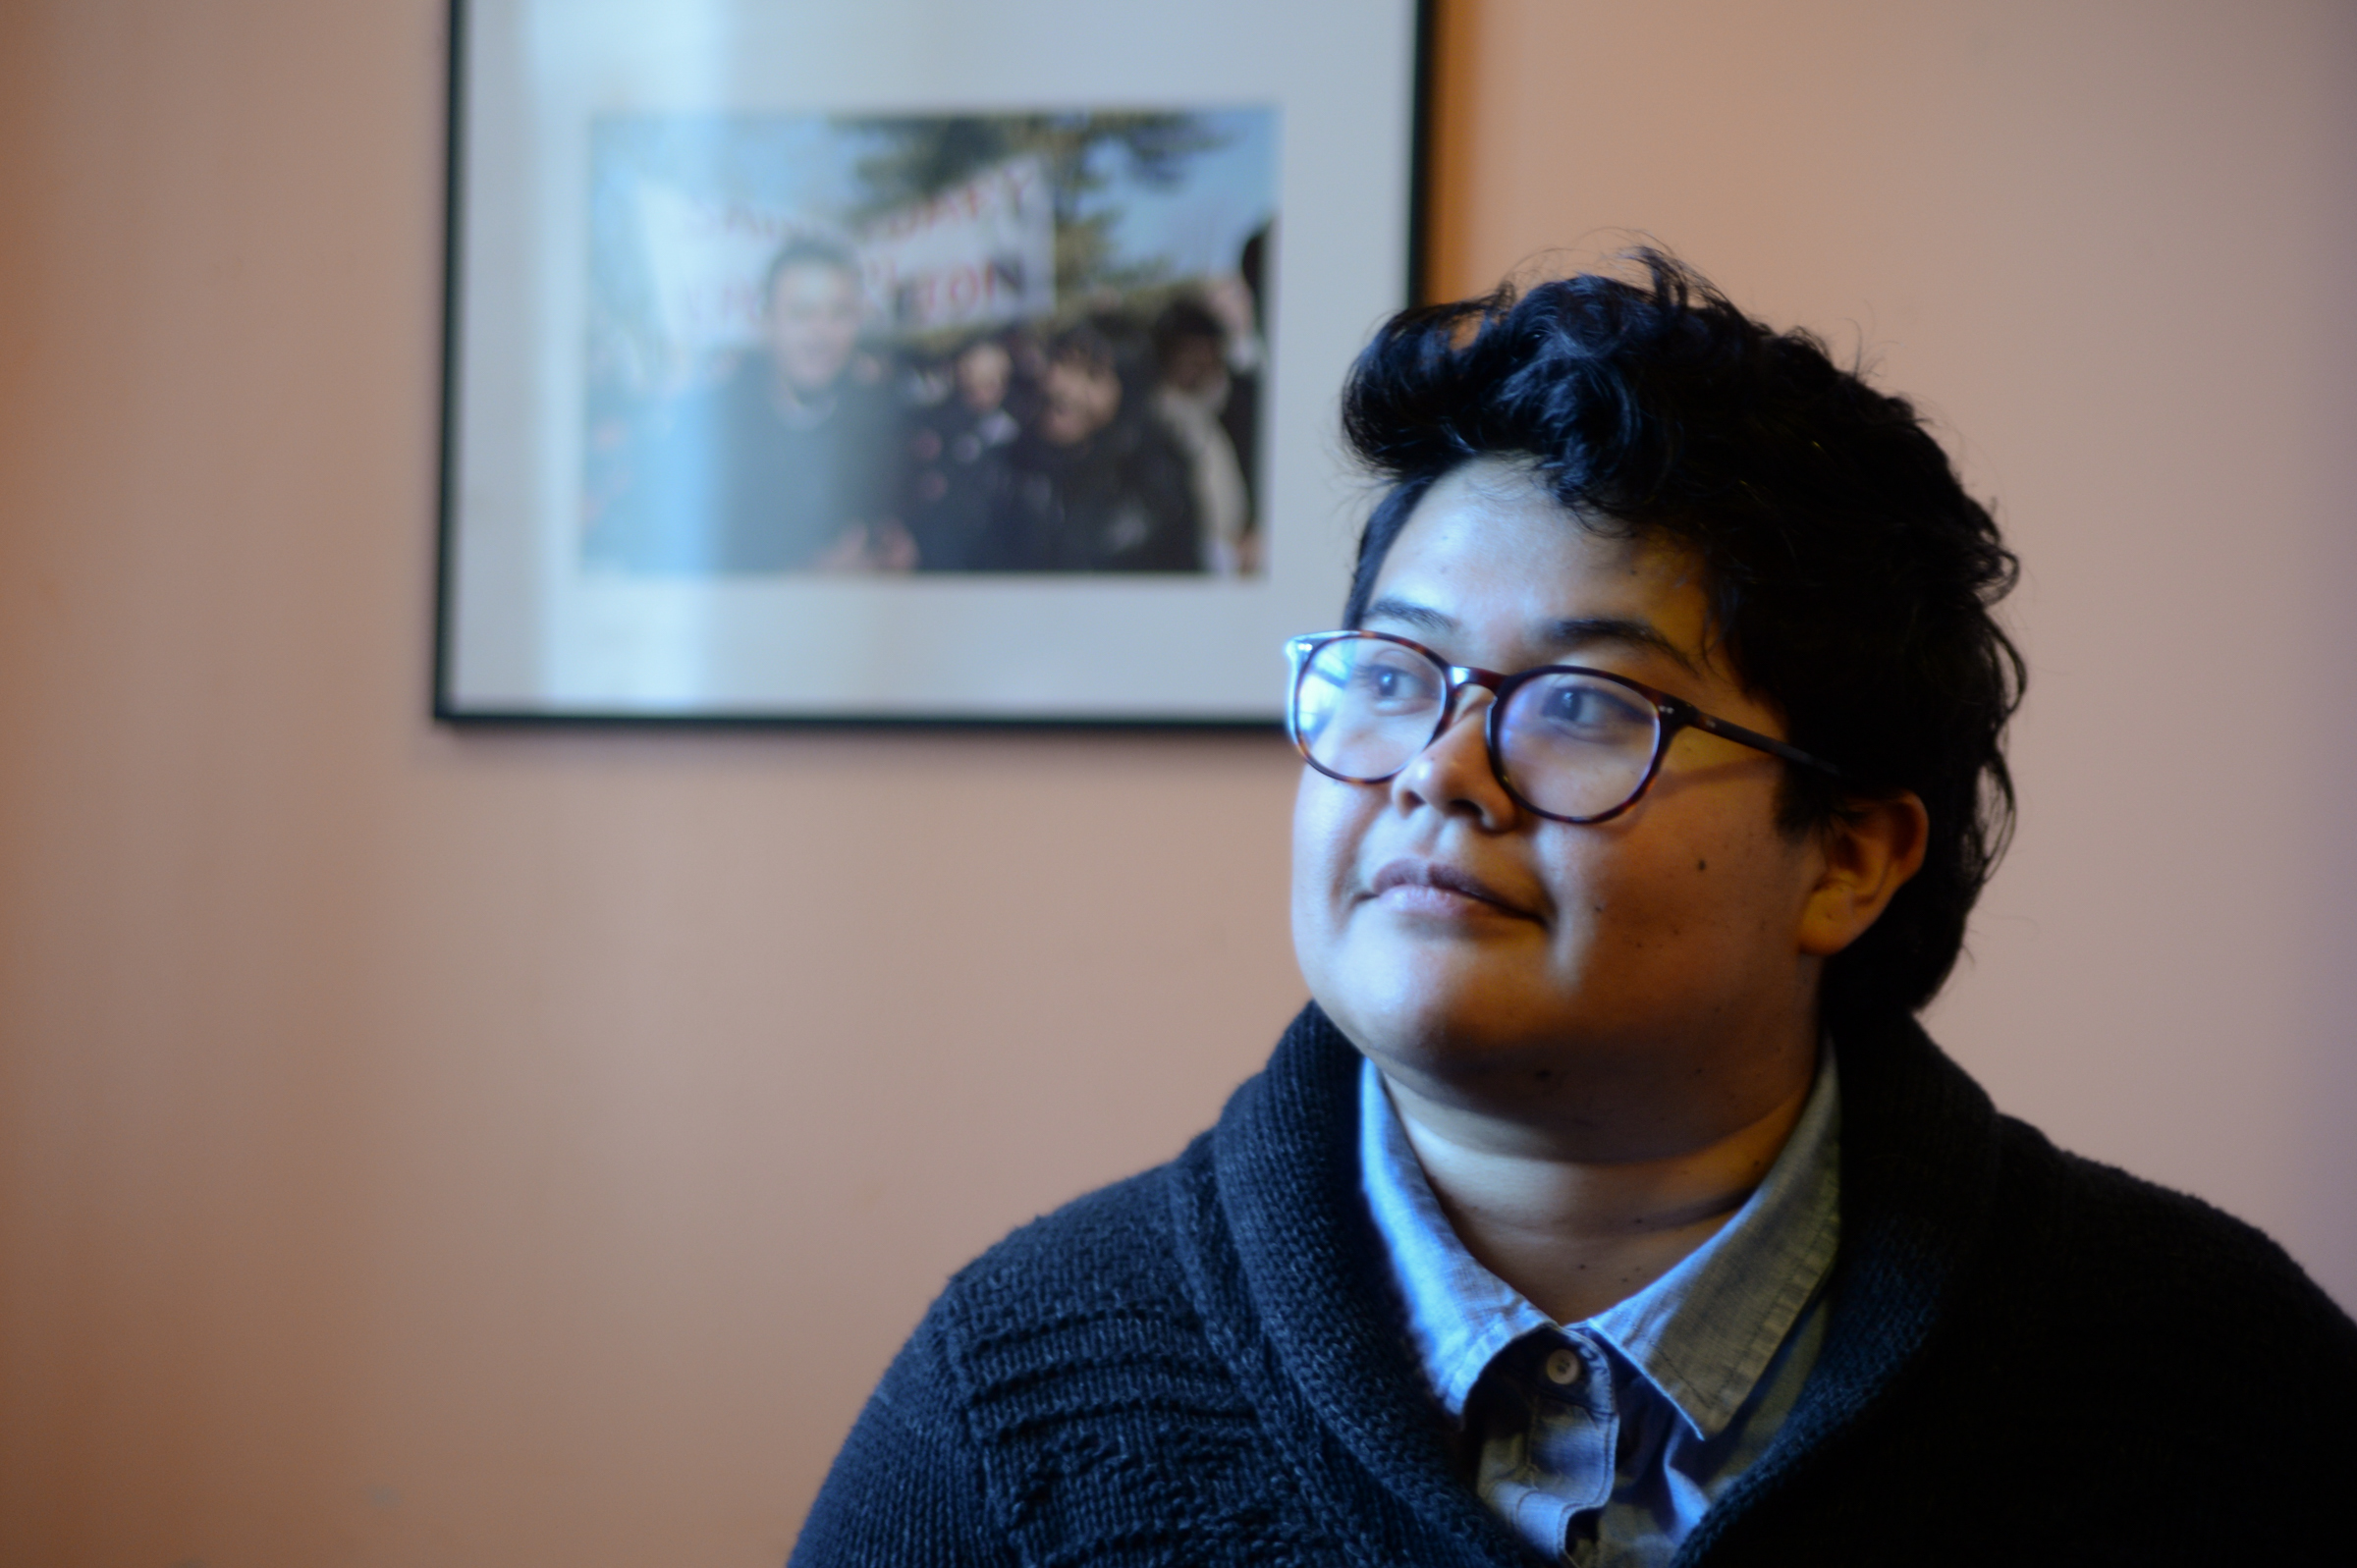 Jazmín Delgado of the New Sanctuary Movement of Philadelphia has experienced an increased work load over the past year as ICE arrests have increased.